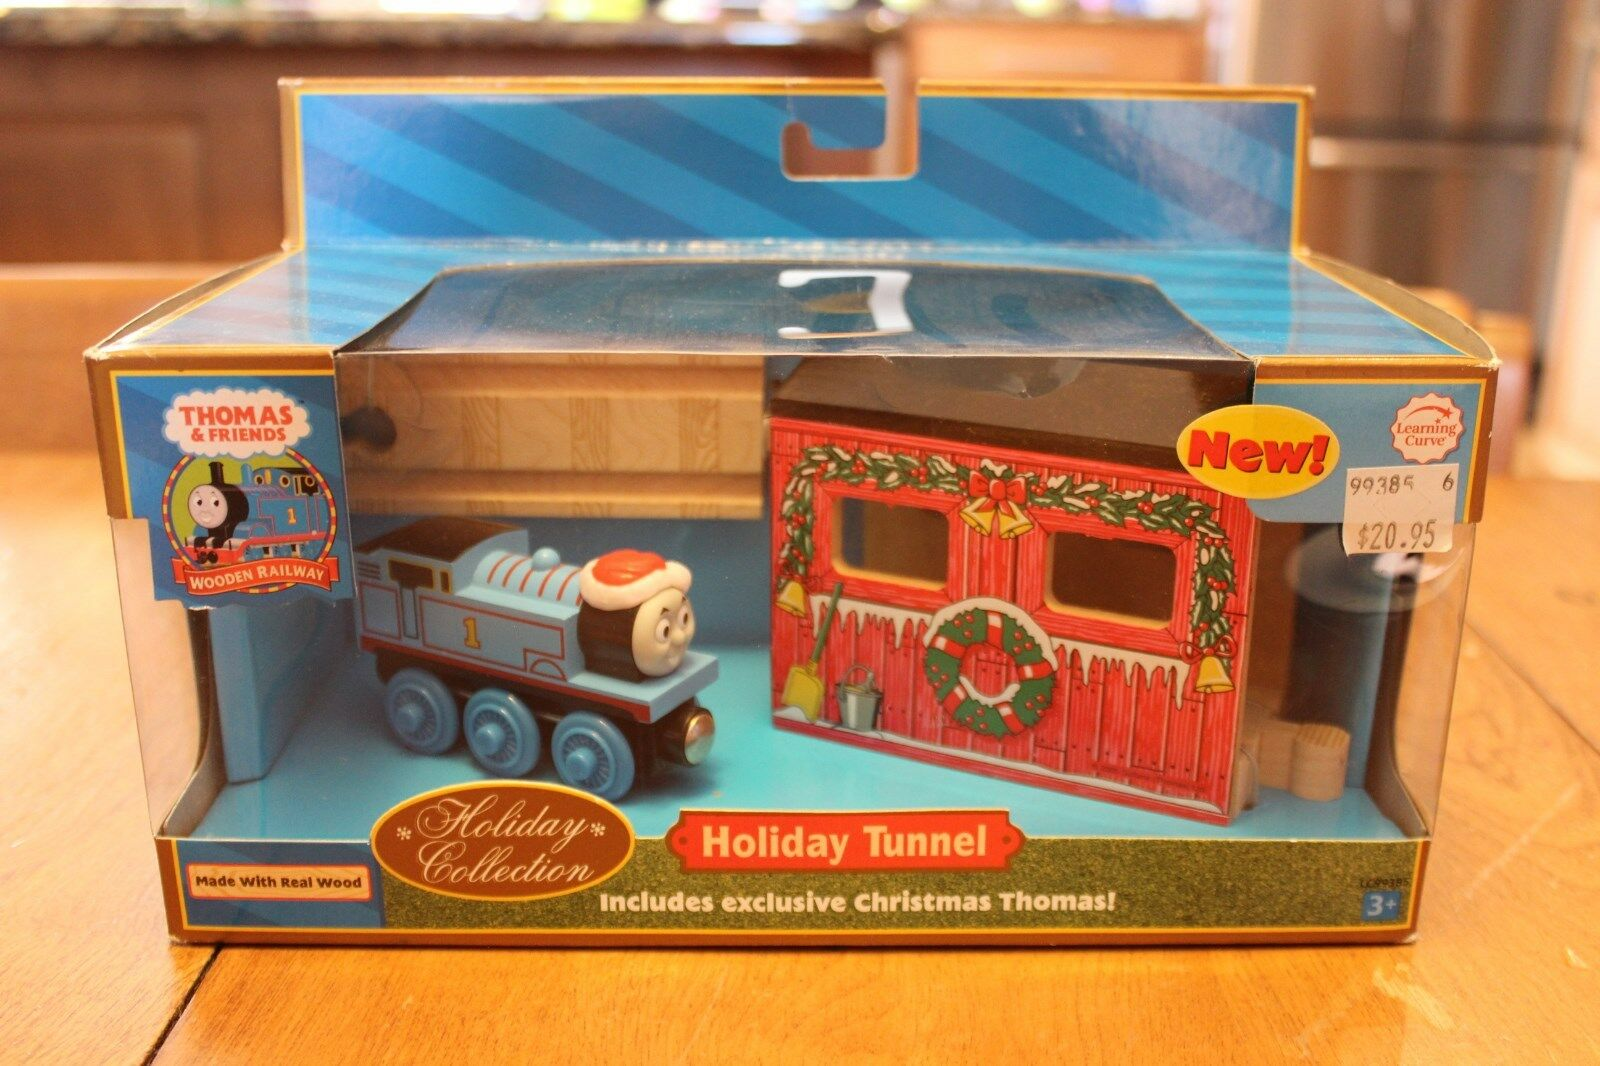 Thomas & Friends Wooden Railway LC99385 Holiday Tunnel Christmas Real Wood New